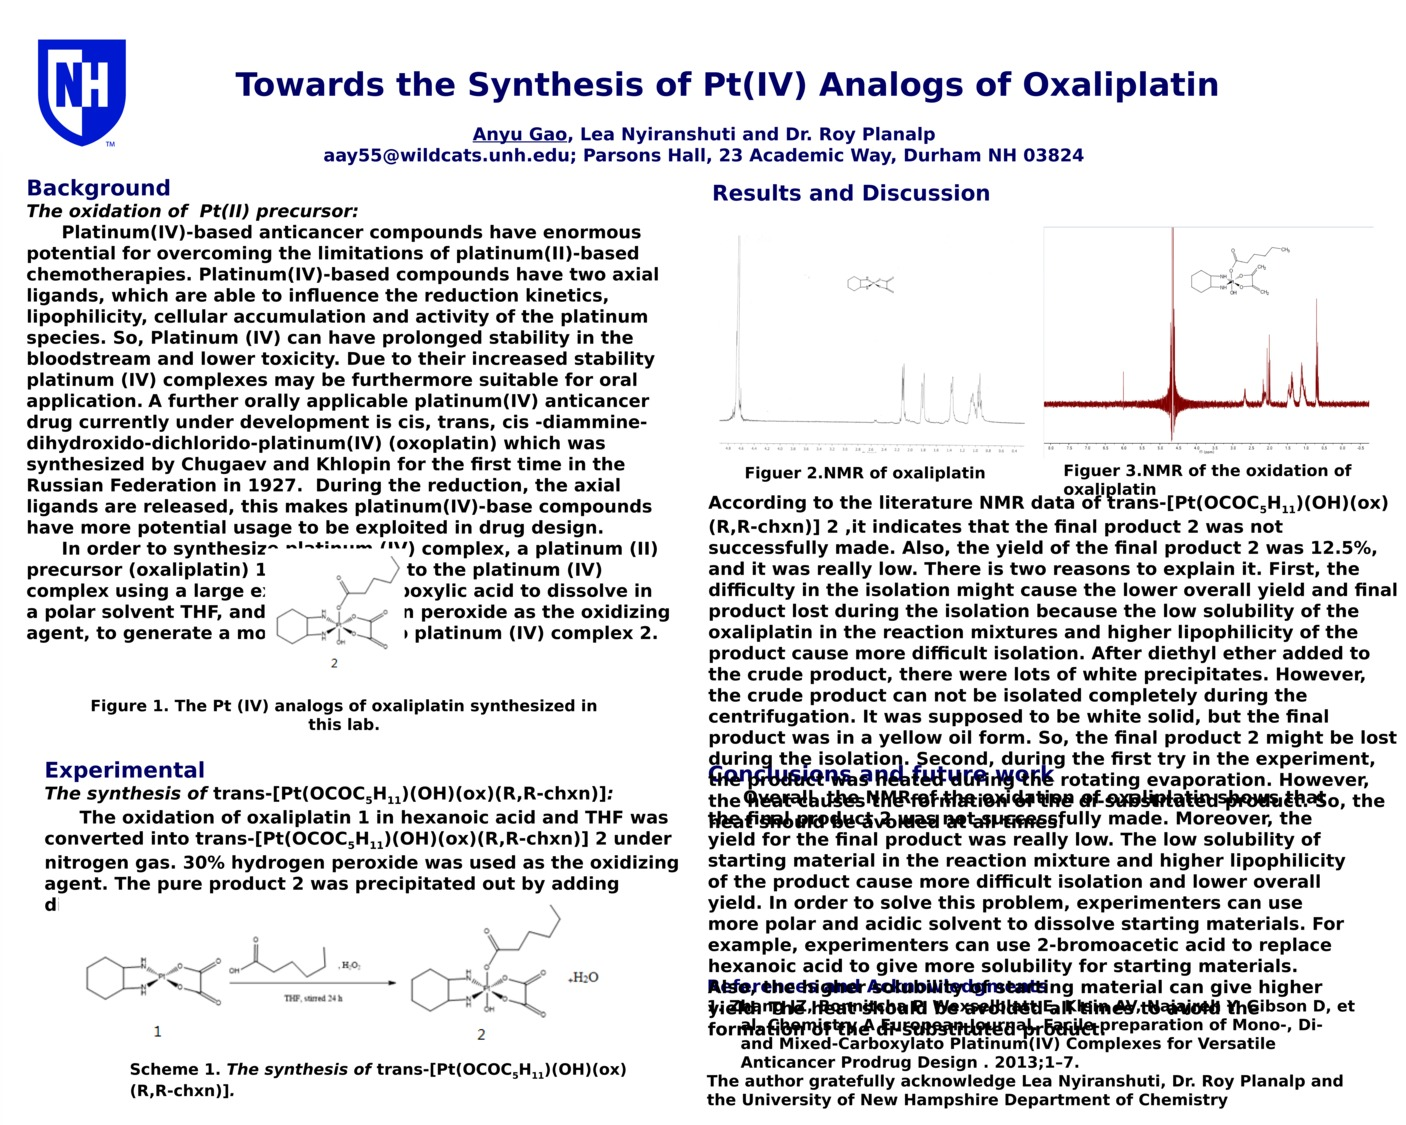 Towards The Synthesis Of Pt(Iv) Analogs Of Oxaliplatin by aay55